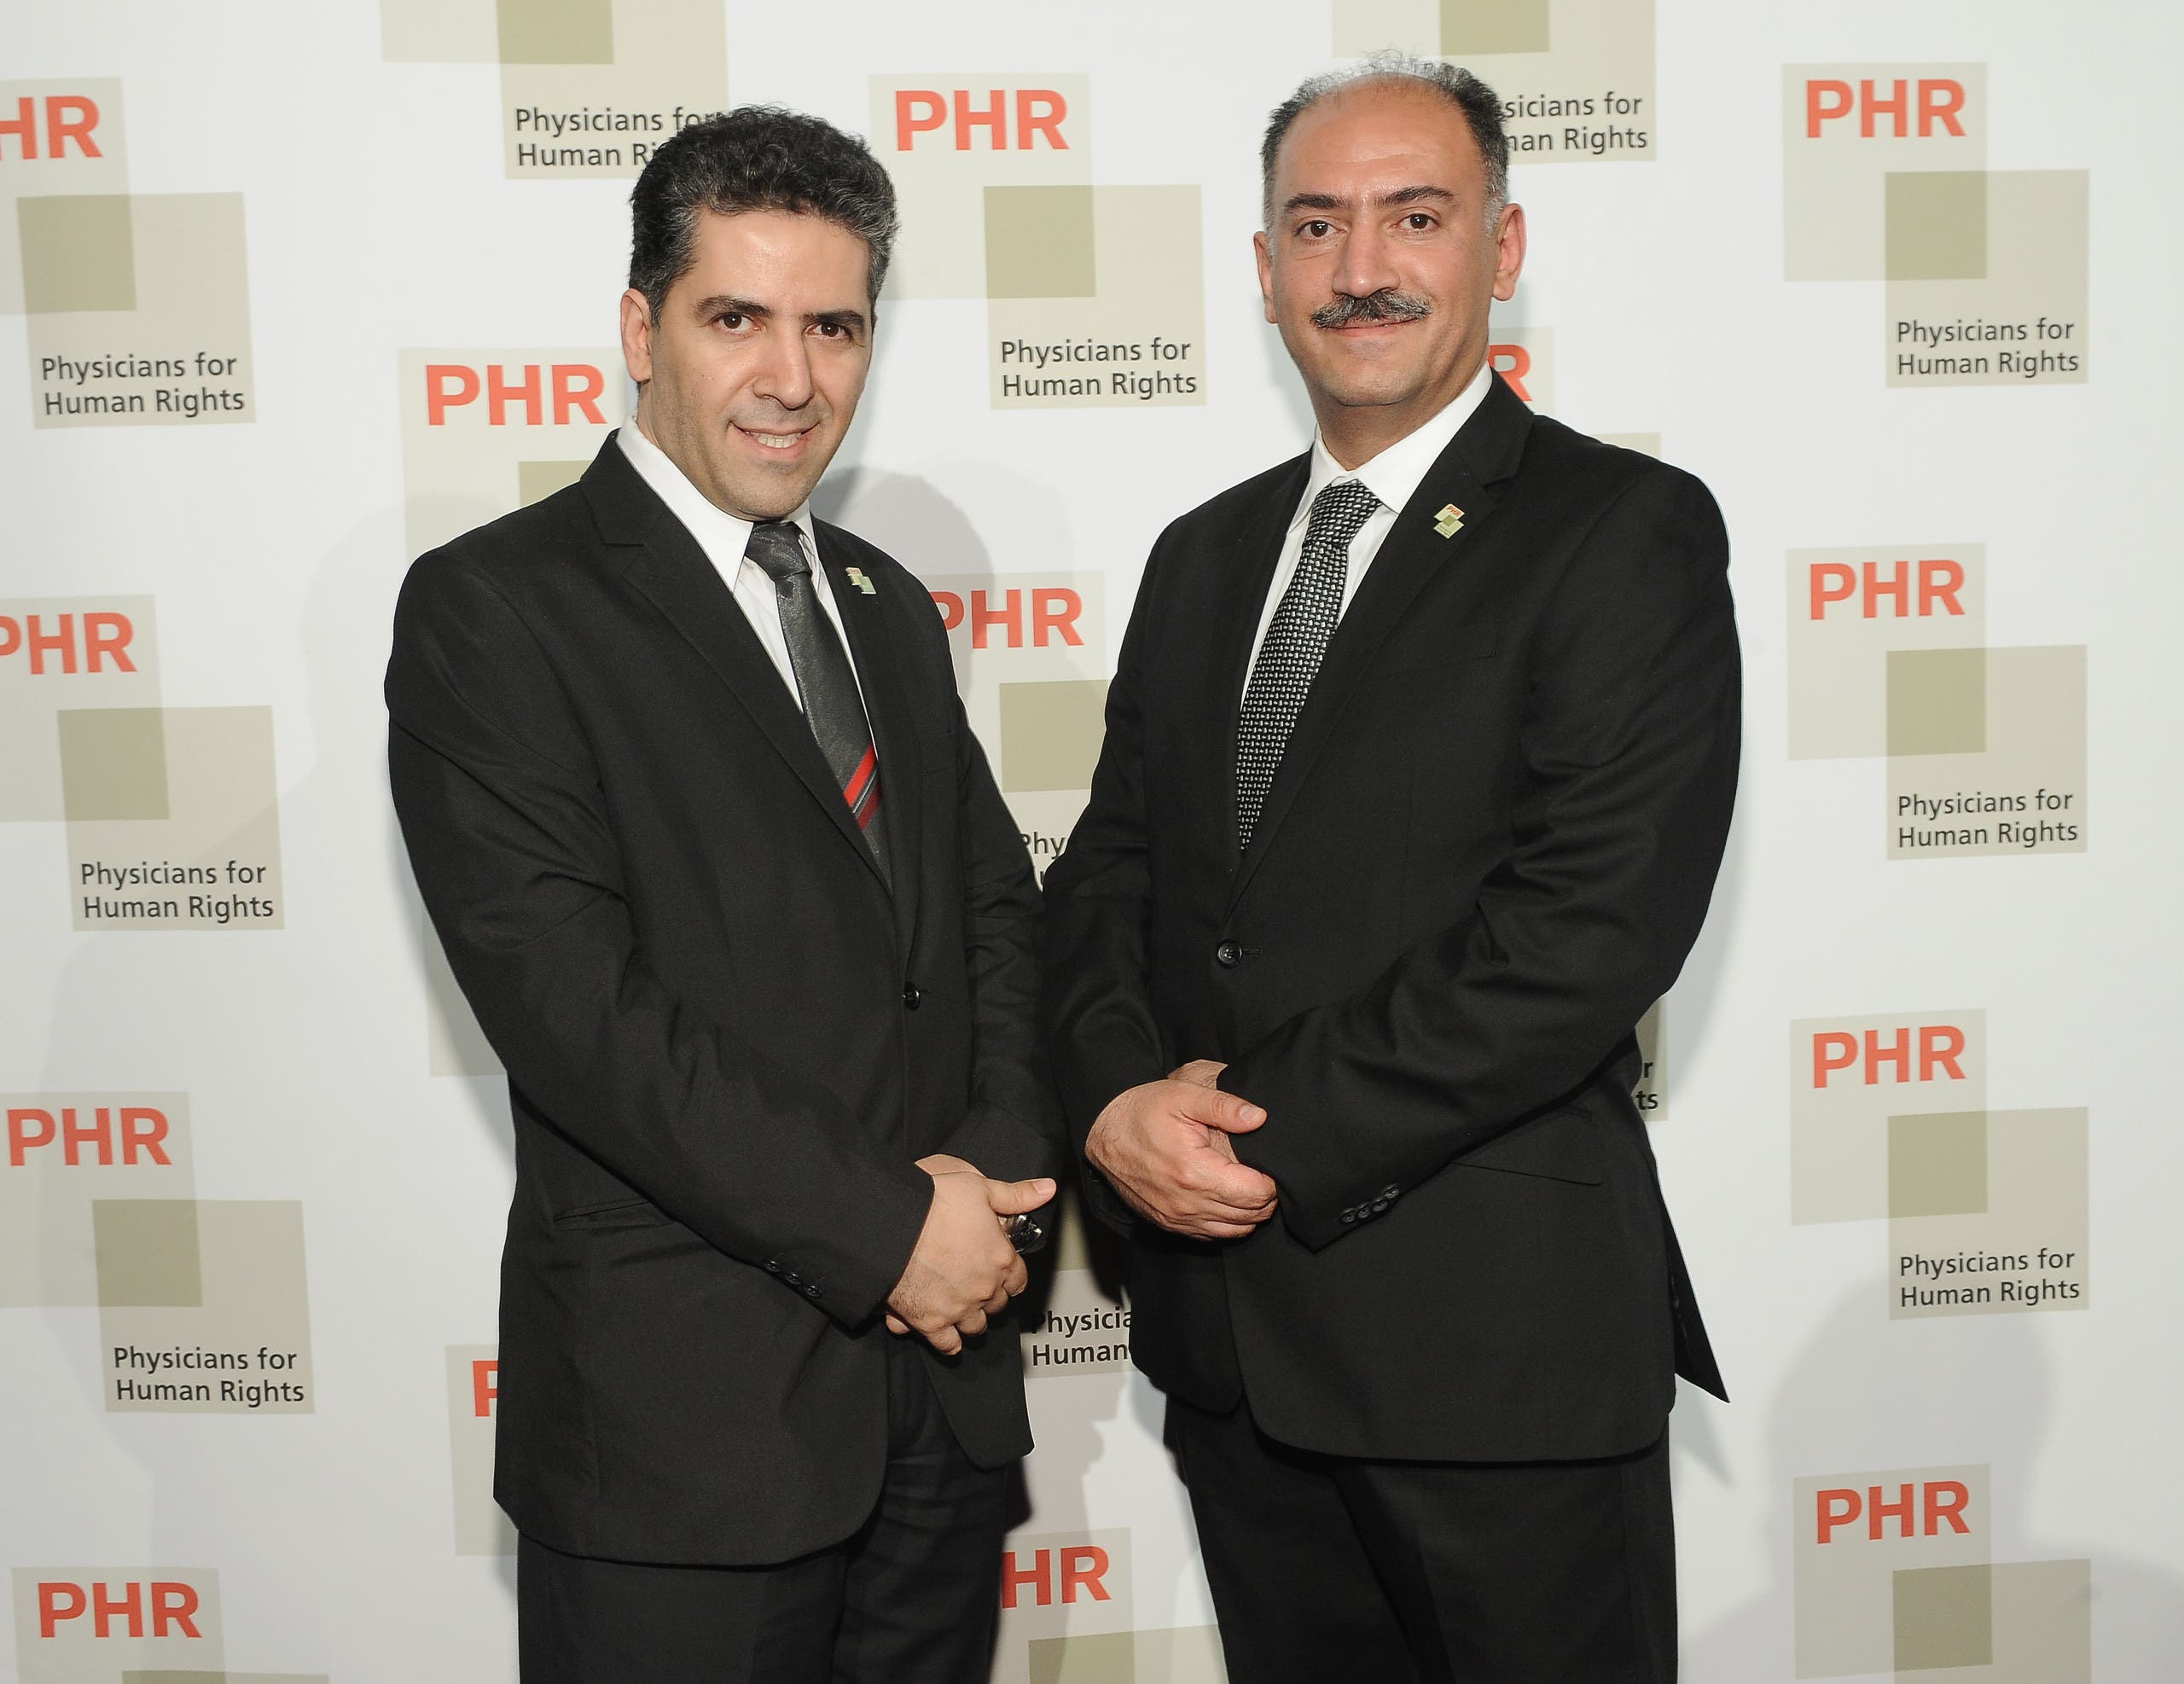 Renowned HIV doctors praised for their work by the World Health Organization Kamiar and Arash Alaei attend 2015 Physicians For Human Rights Gala on April 28, 2015 in New York City. (AP)